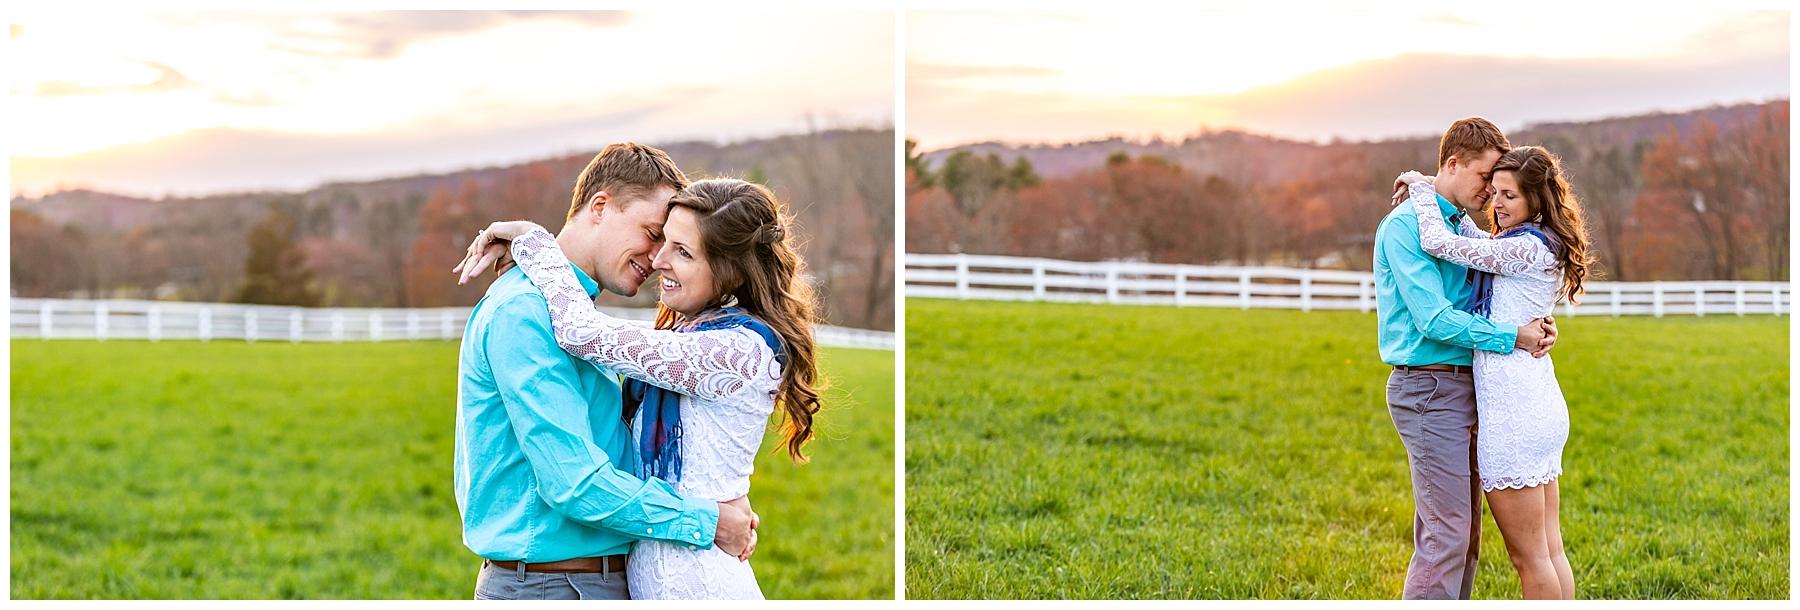 Chelsea Phil Private Estate Engagement Living Radiant Photography photos color_0044.jpg